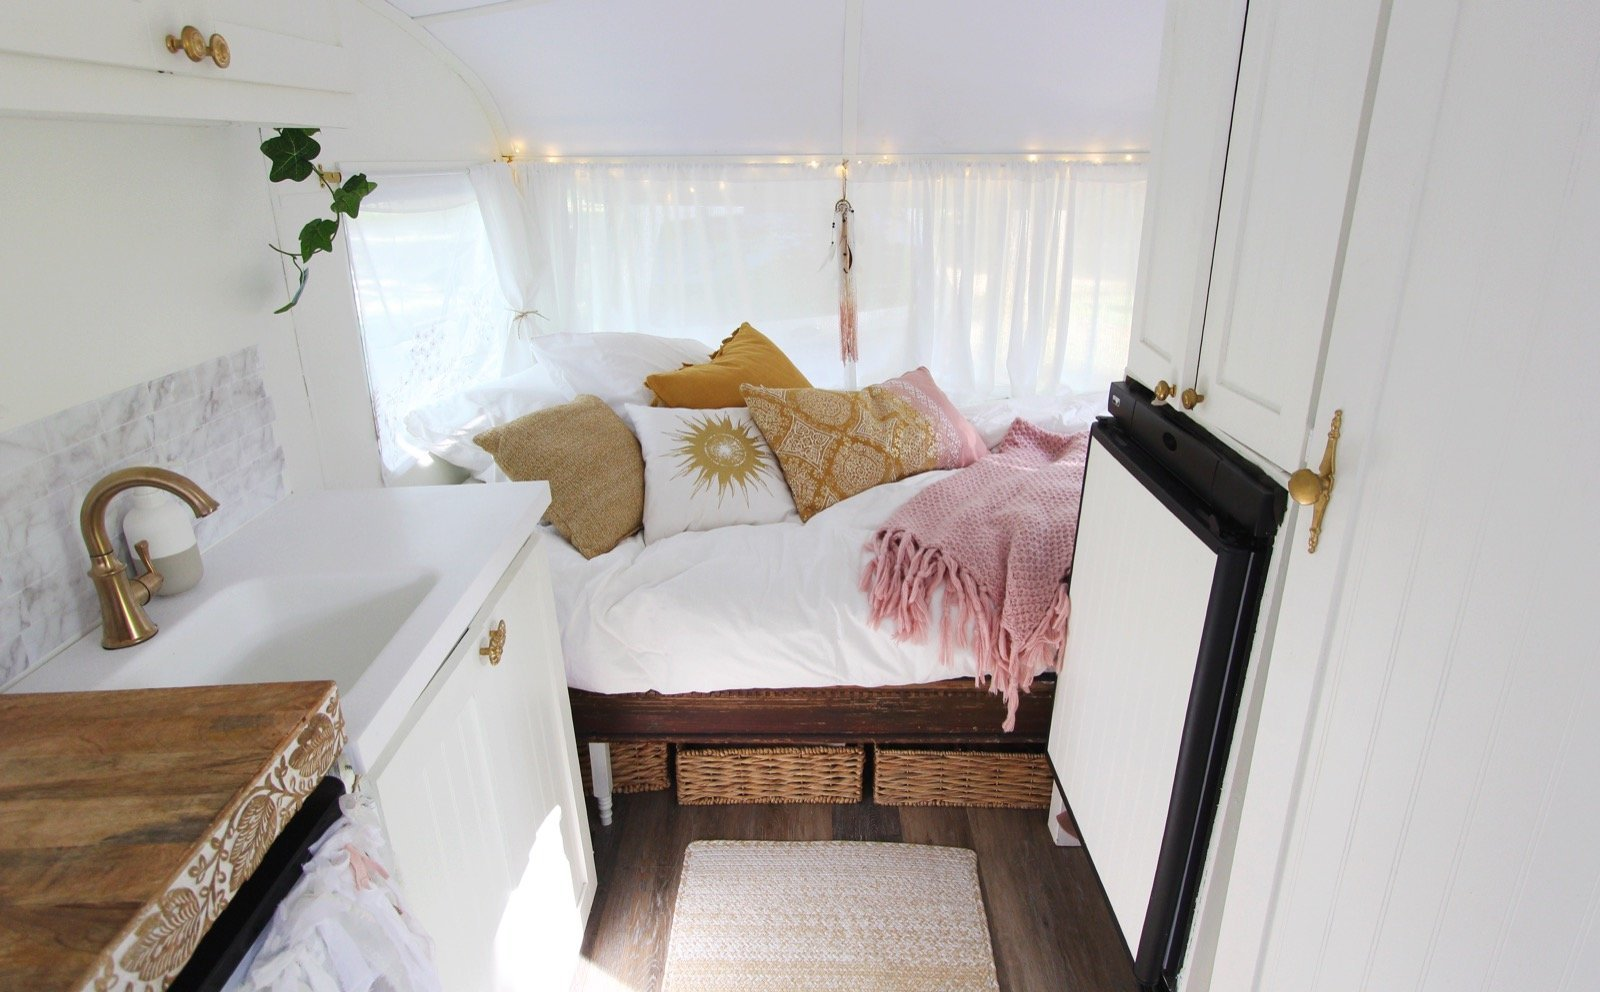 vintage-camper-classic-white-gold-reno-inspirations-ideas-boho-gypsy-hippy-pearl-musician-singer-songwriter-interior9